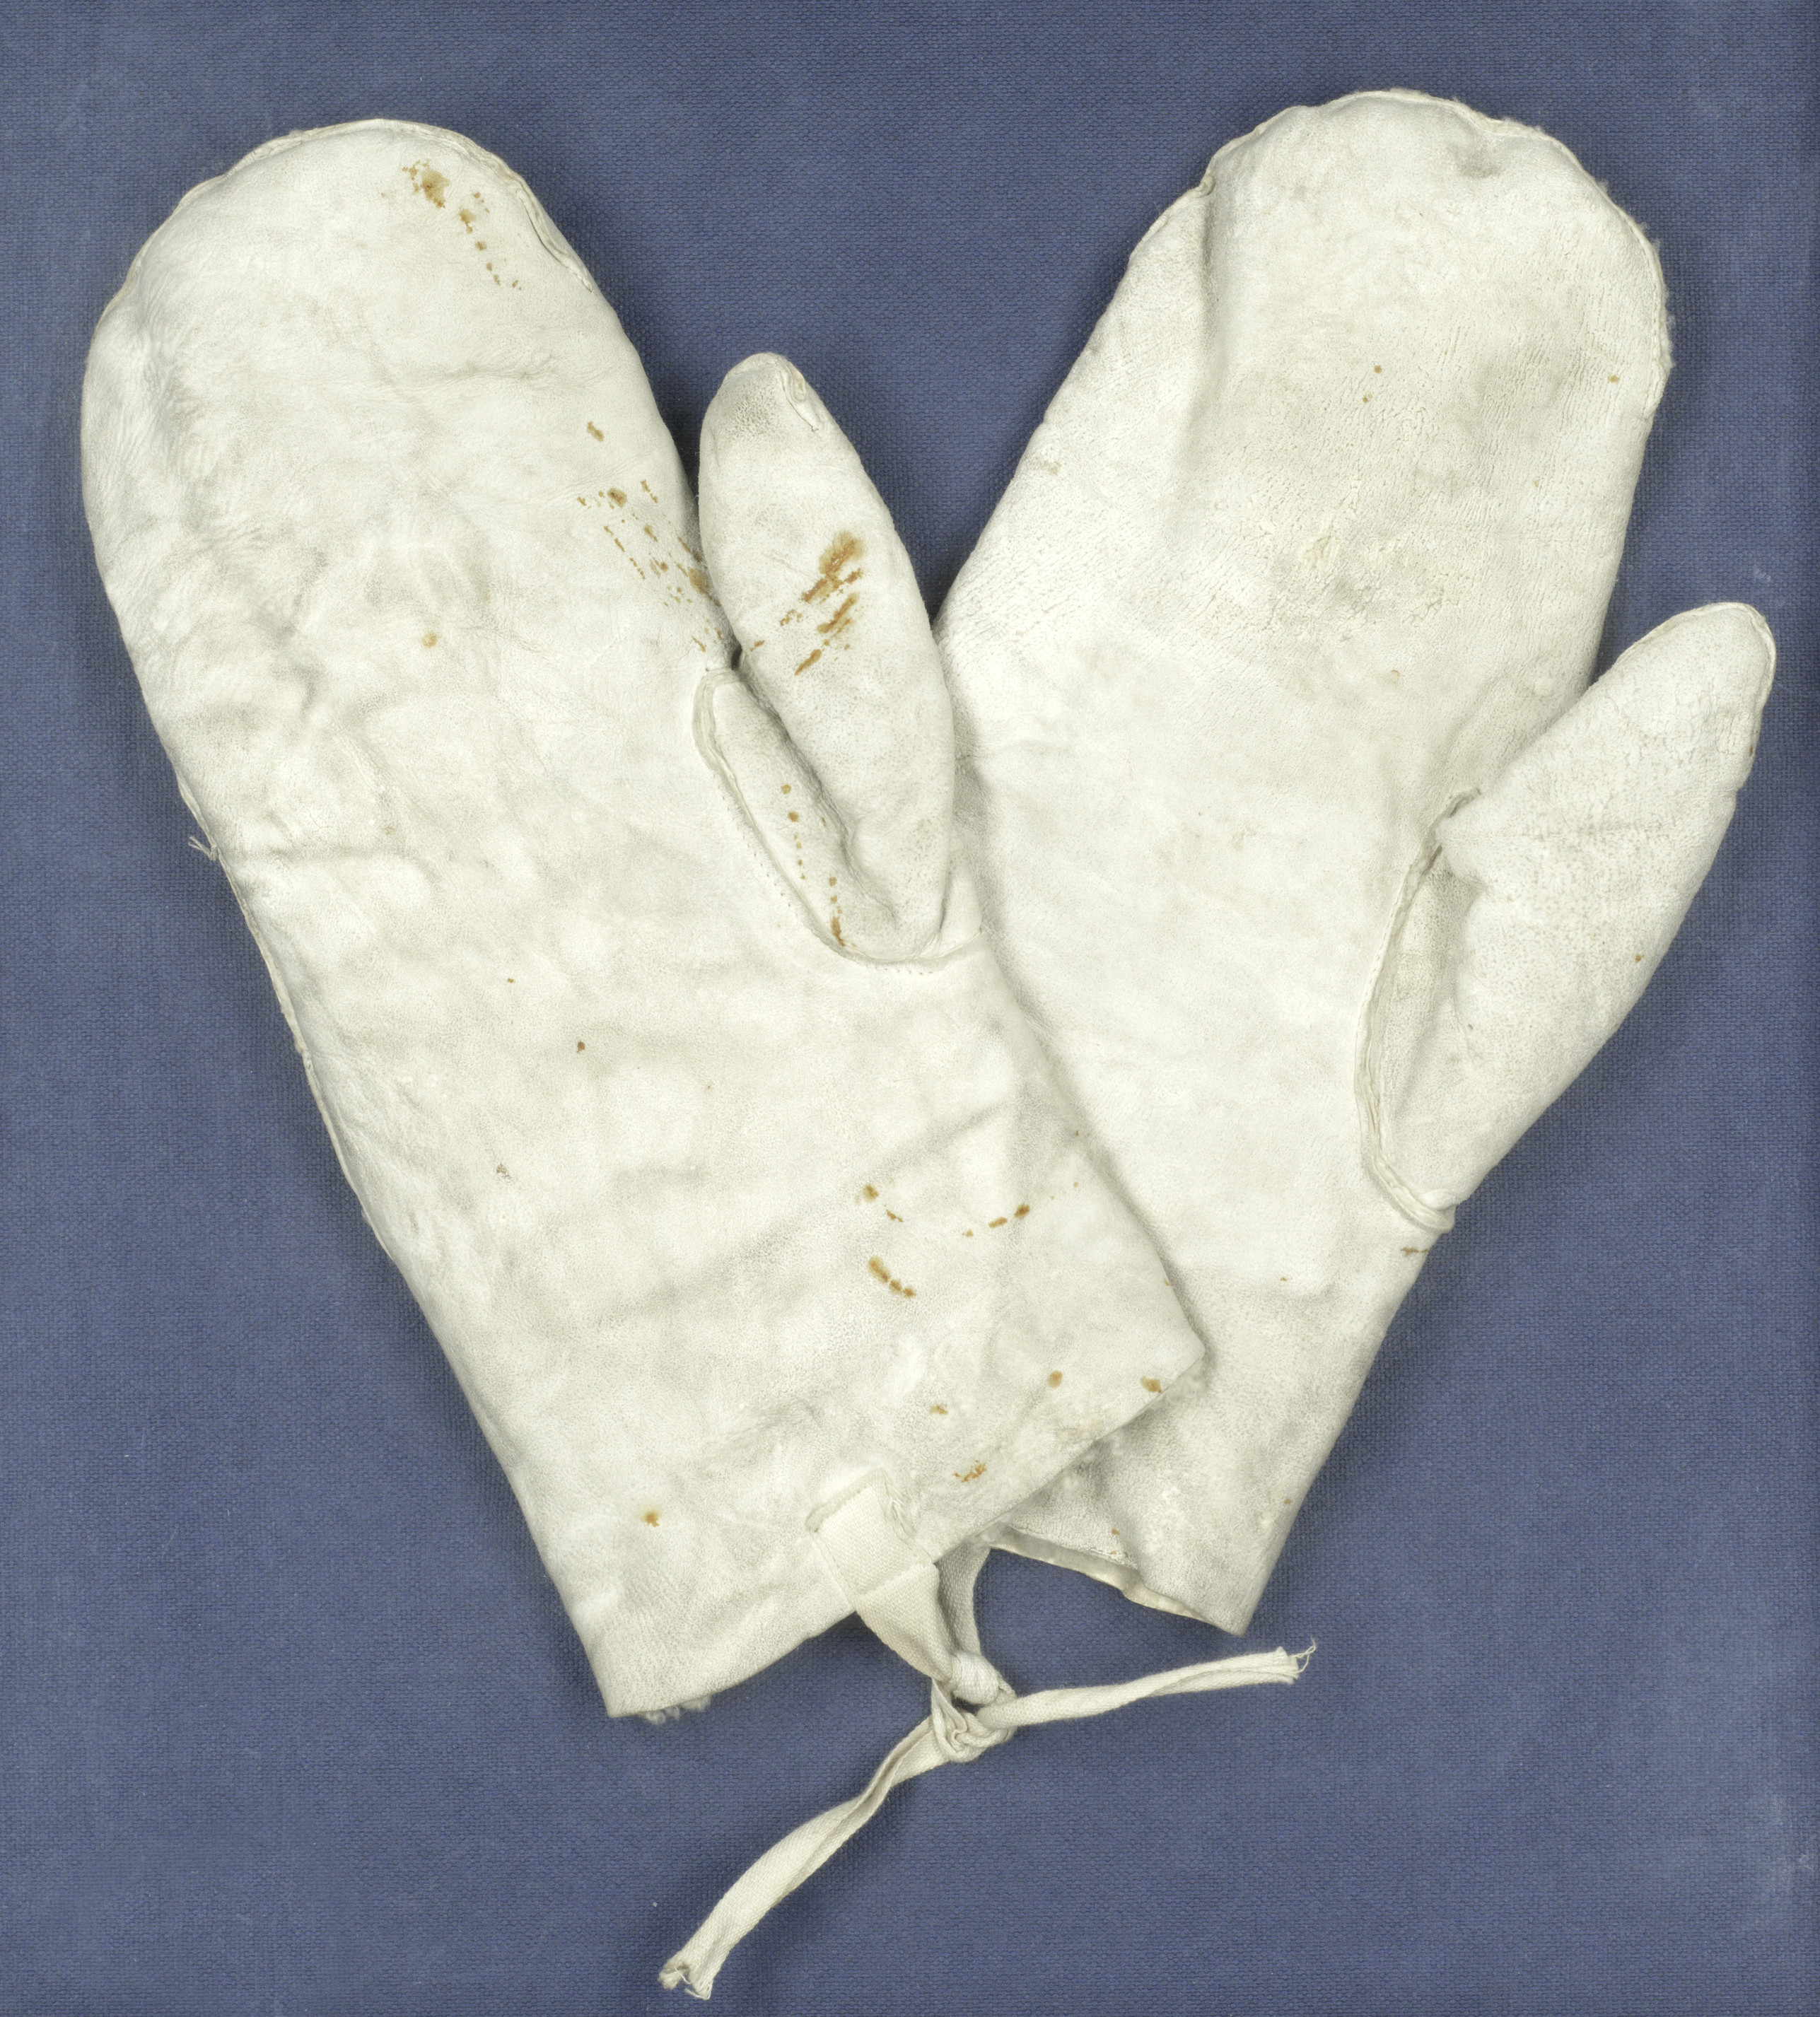 A pair of lambskin inner mittens with cotton drawstrings, which belonged to British explorer Apsley Cherry-Garrard.